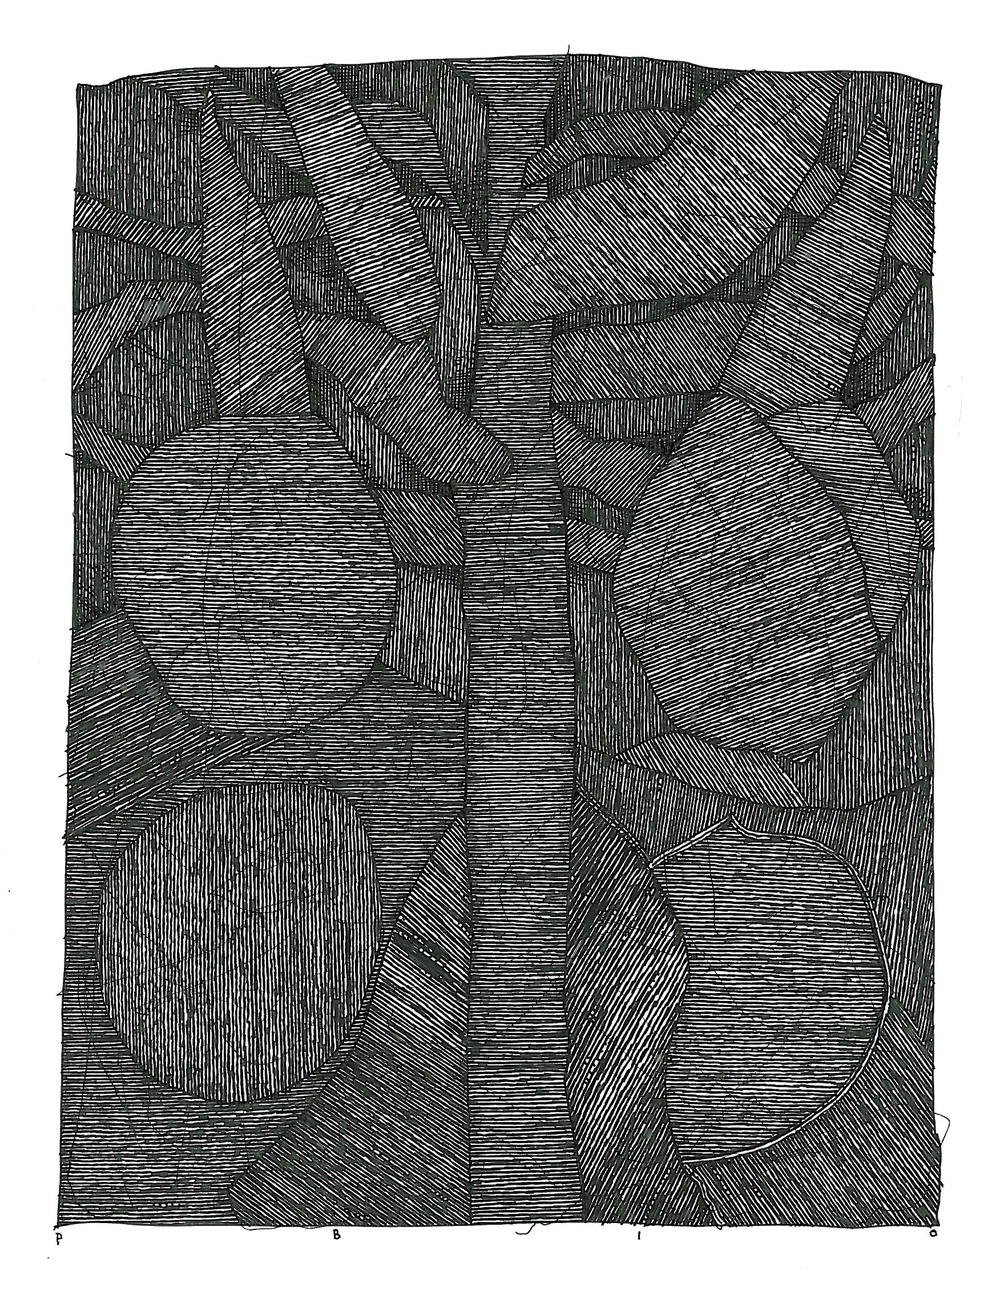 "Pen and Ink - 5"" x 7"" - 2010"